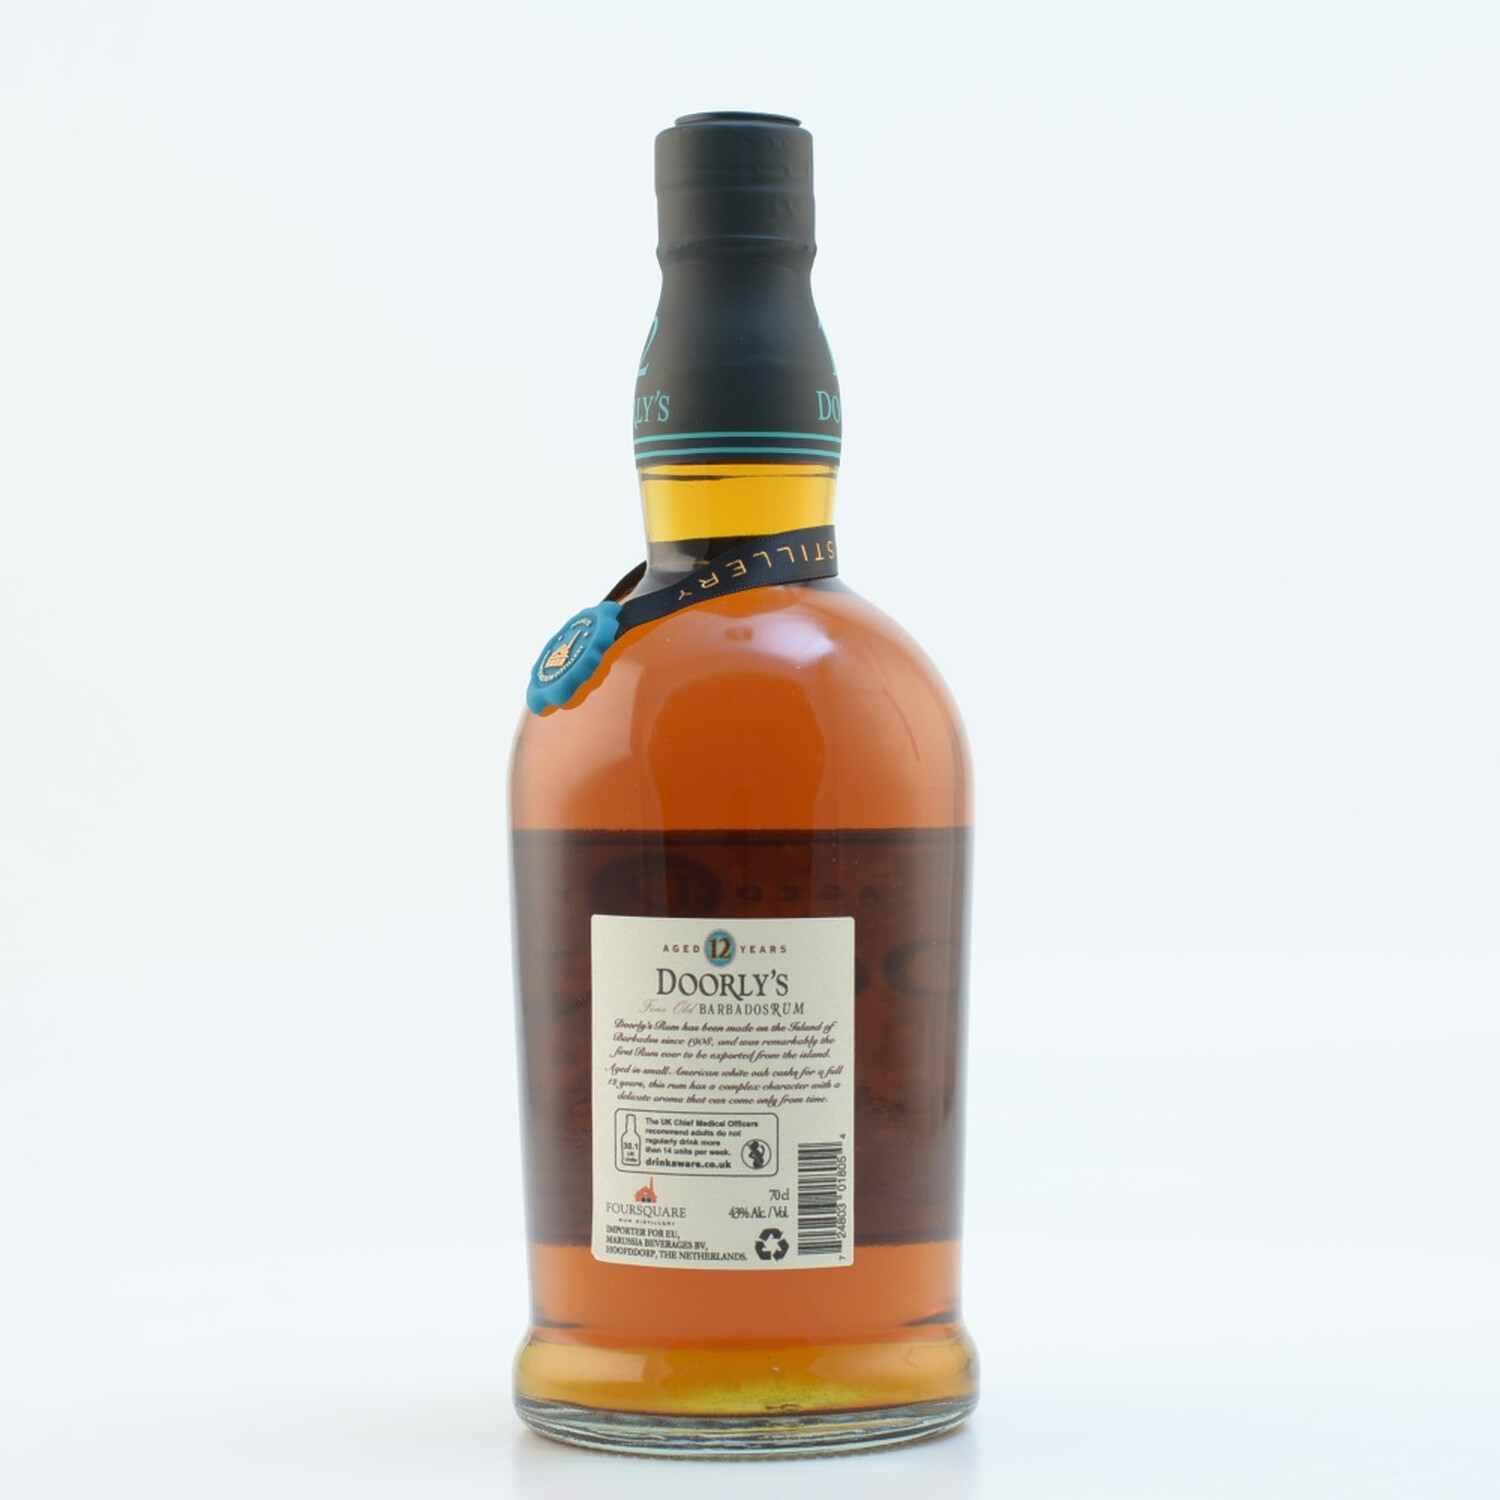 Doorly's 12 Jahre Fine Old Rum 40% 0,7l